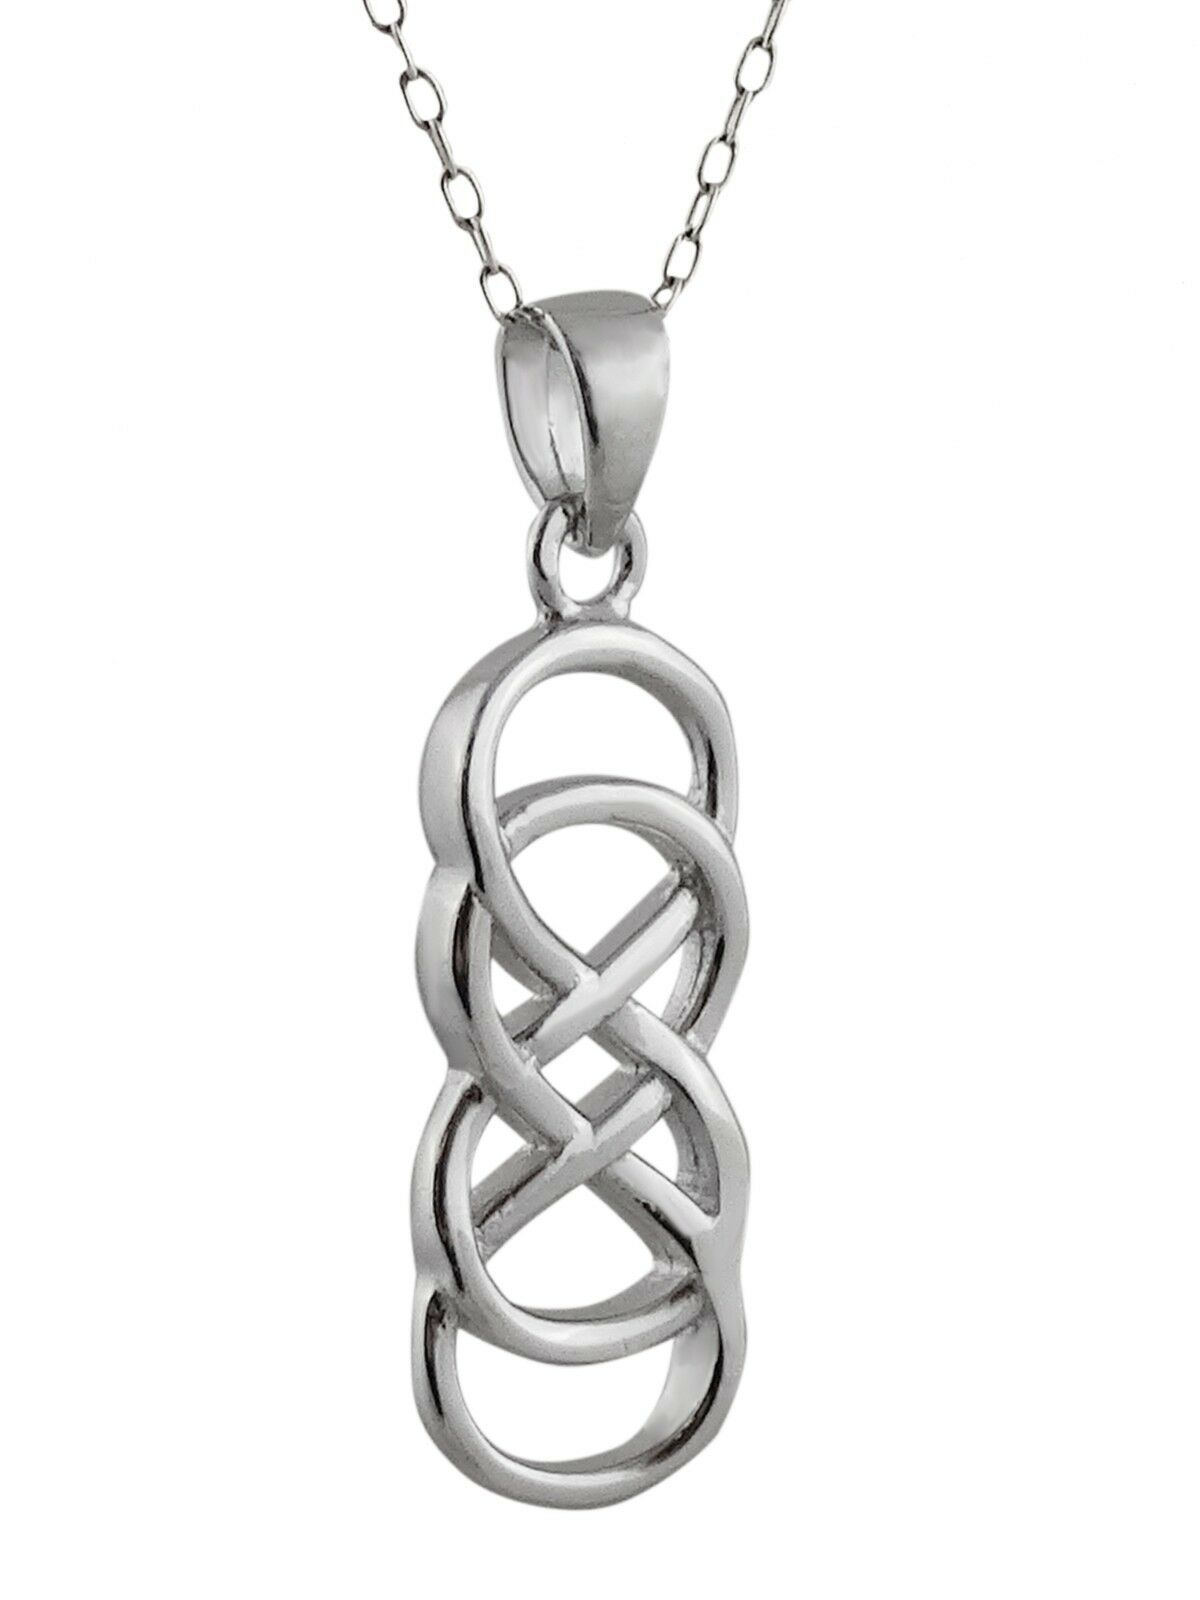 Double Infinity Sign Necklace - 925 Sterling Silver Pendant